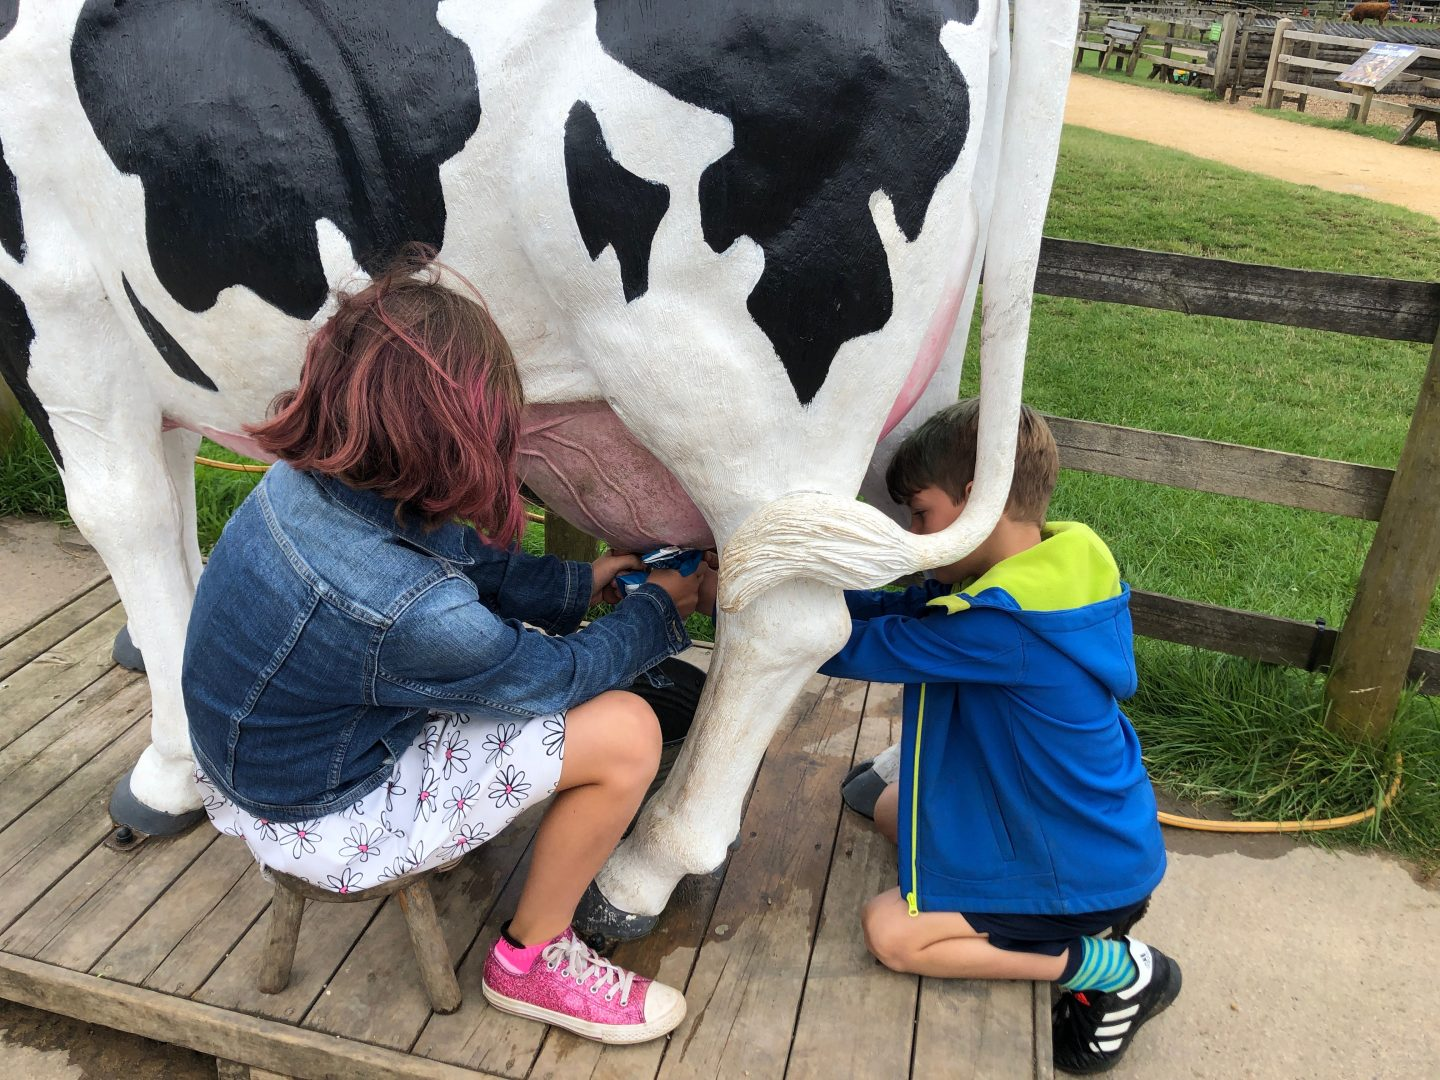 My two children having a go at 'milking' the pretend cow at the Cotswold Farm Park.